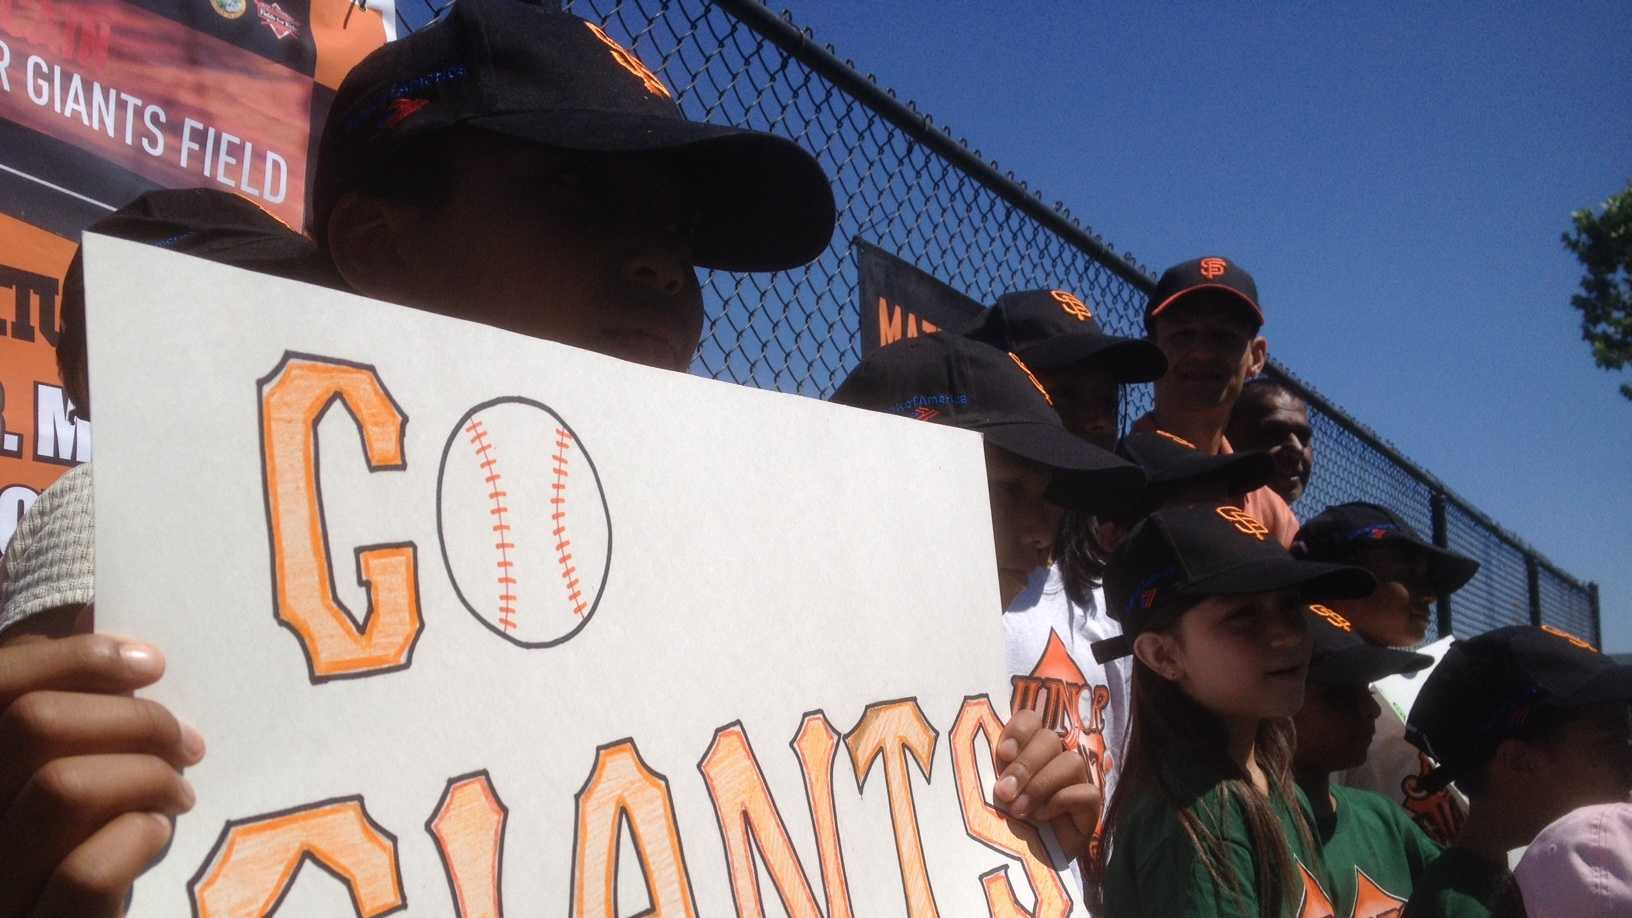 A pint-sized celebration in Sacramento marked Matt Cain's perfect game in San Francisco. Members of the Sacramento Junior Giants had a little fun at the Matt Cain field in south Sacramento.